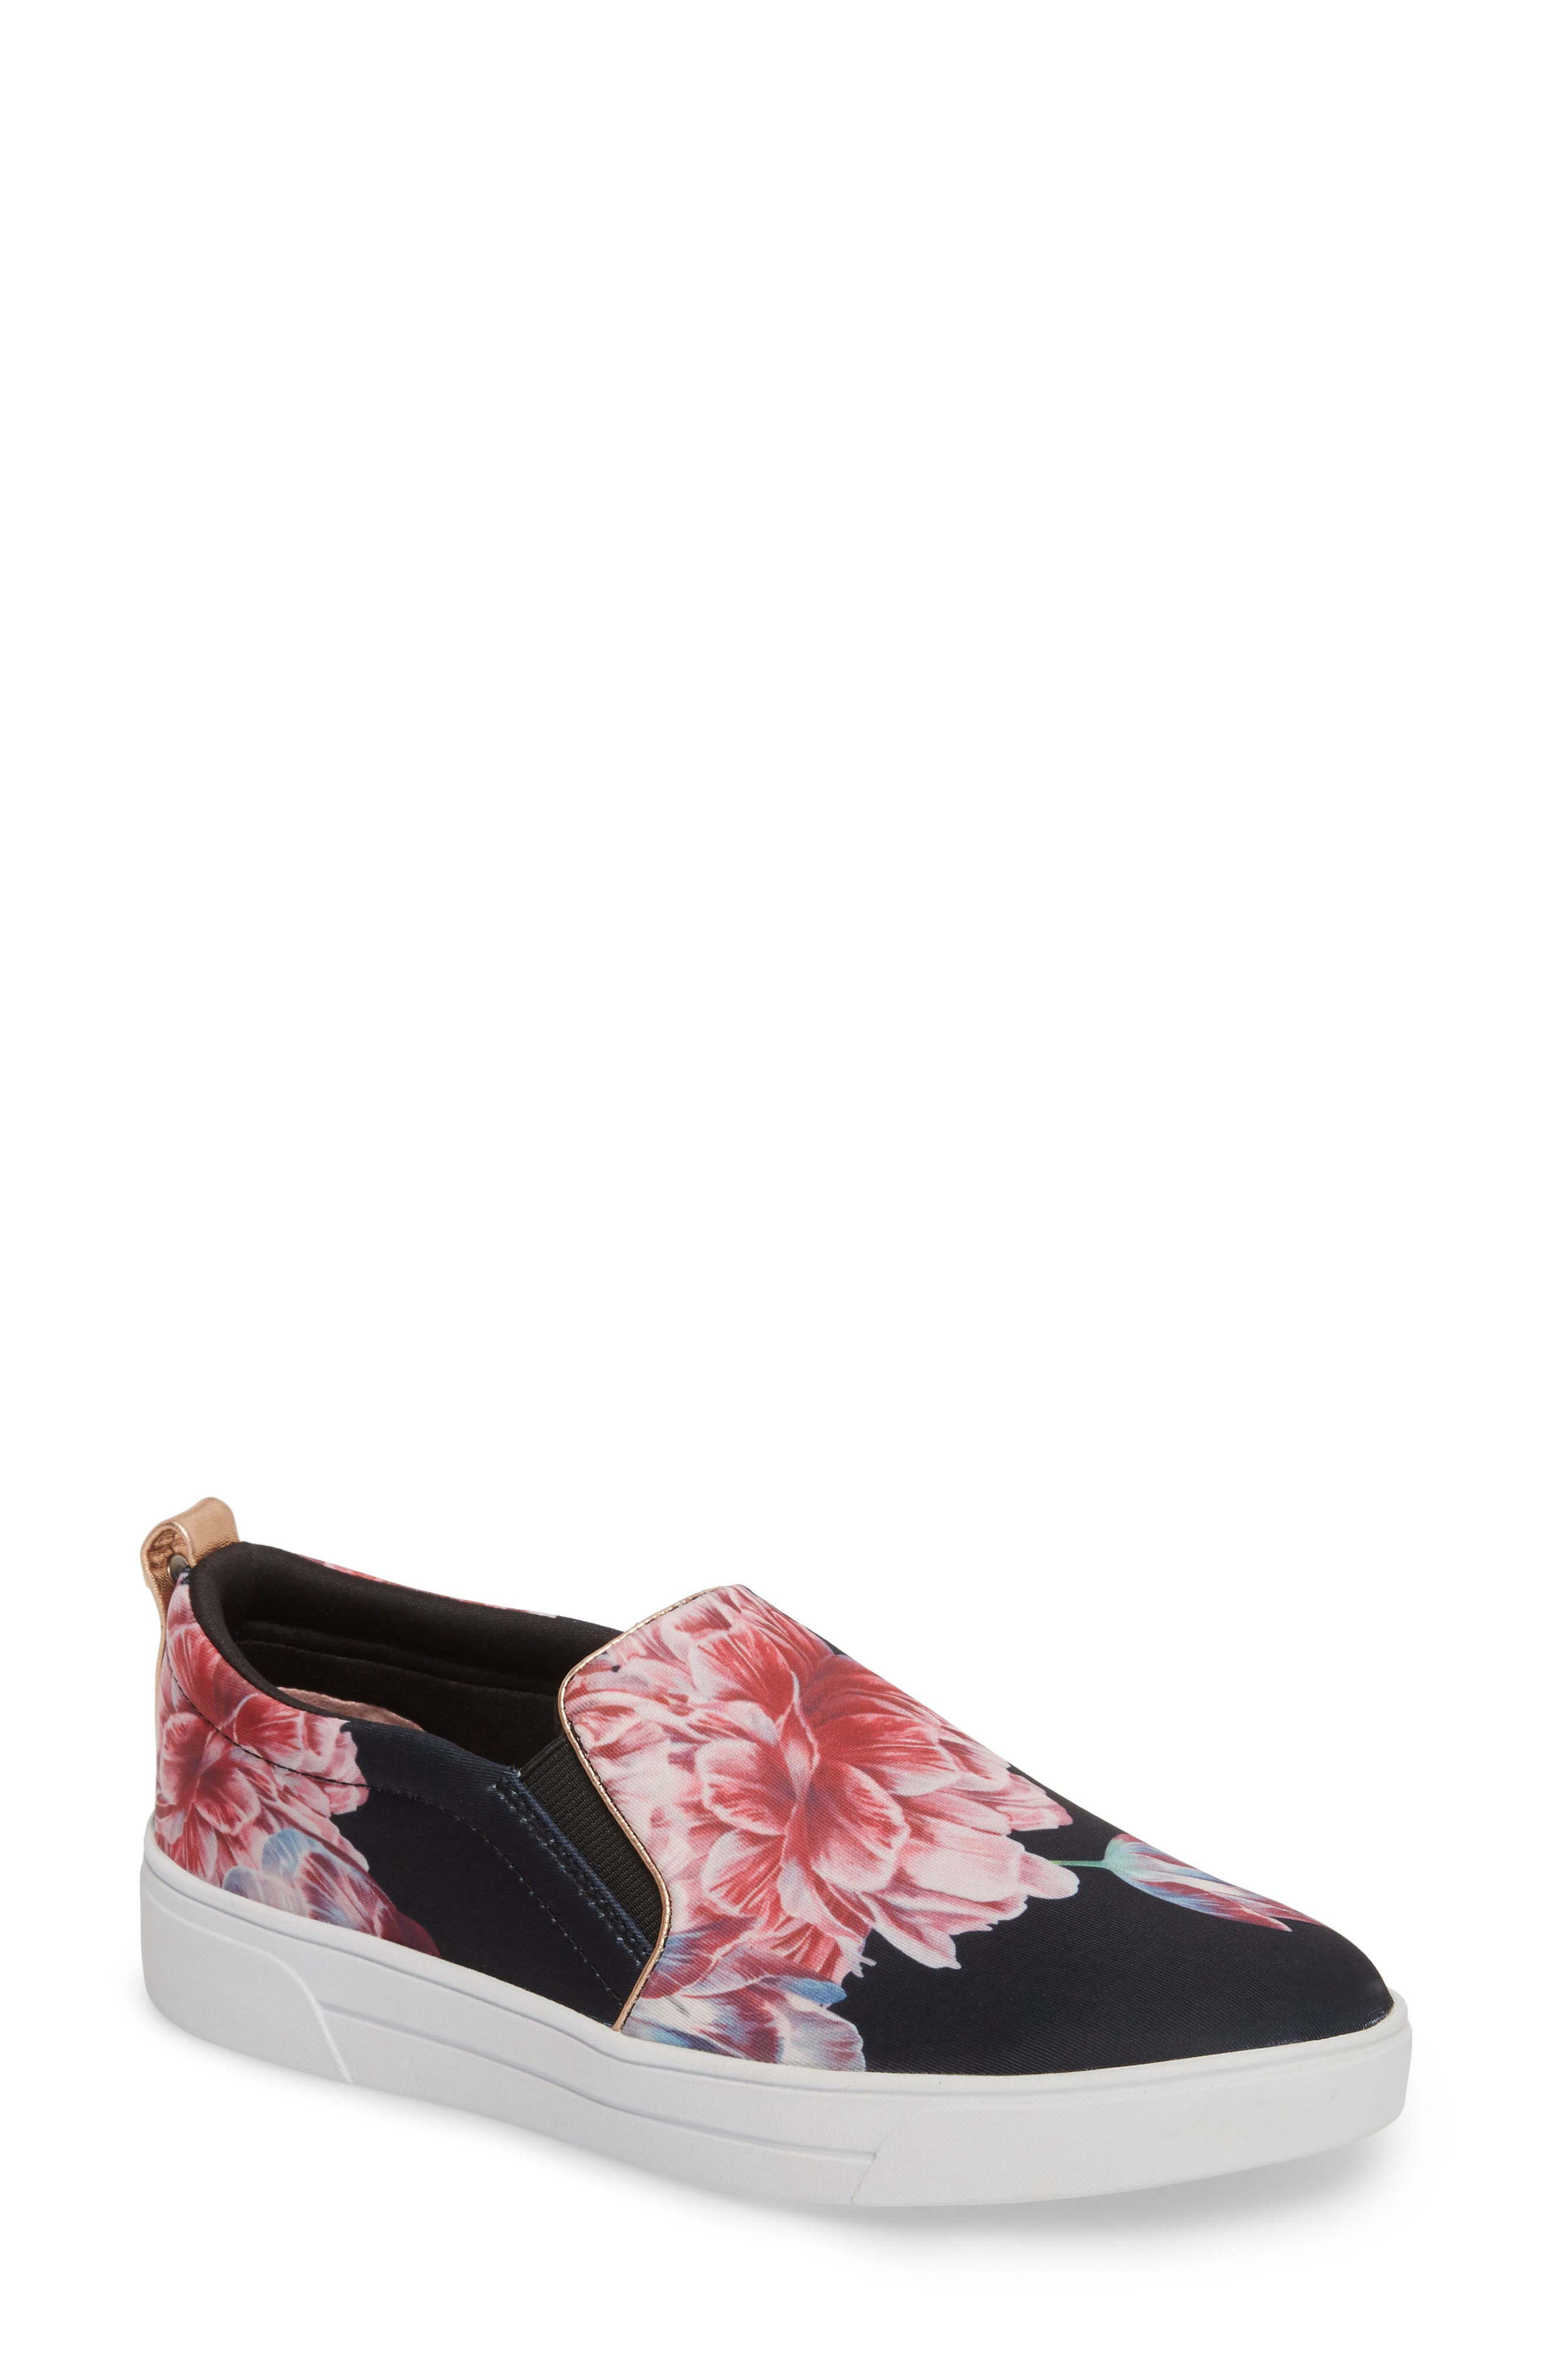 Tancey Slip-On Sneaker,                         Main,                         color, Black Tranquility Fabric